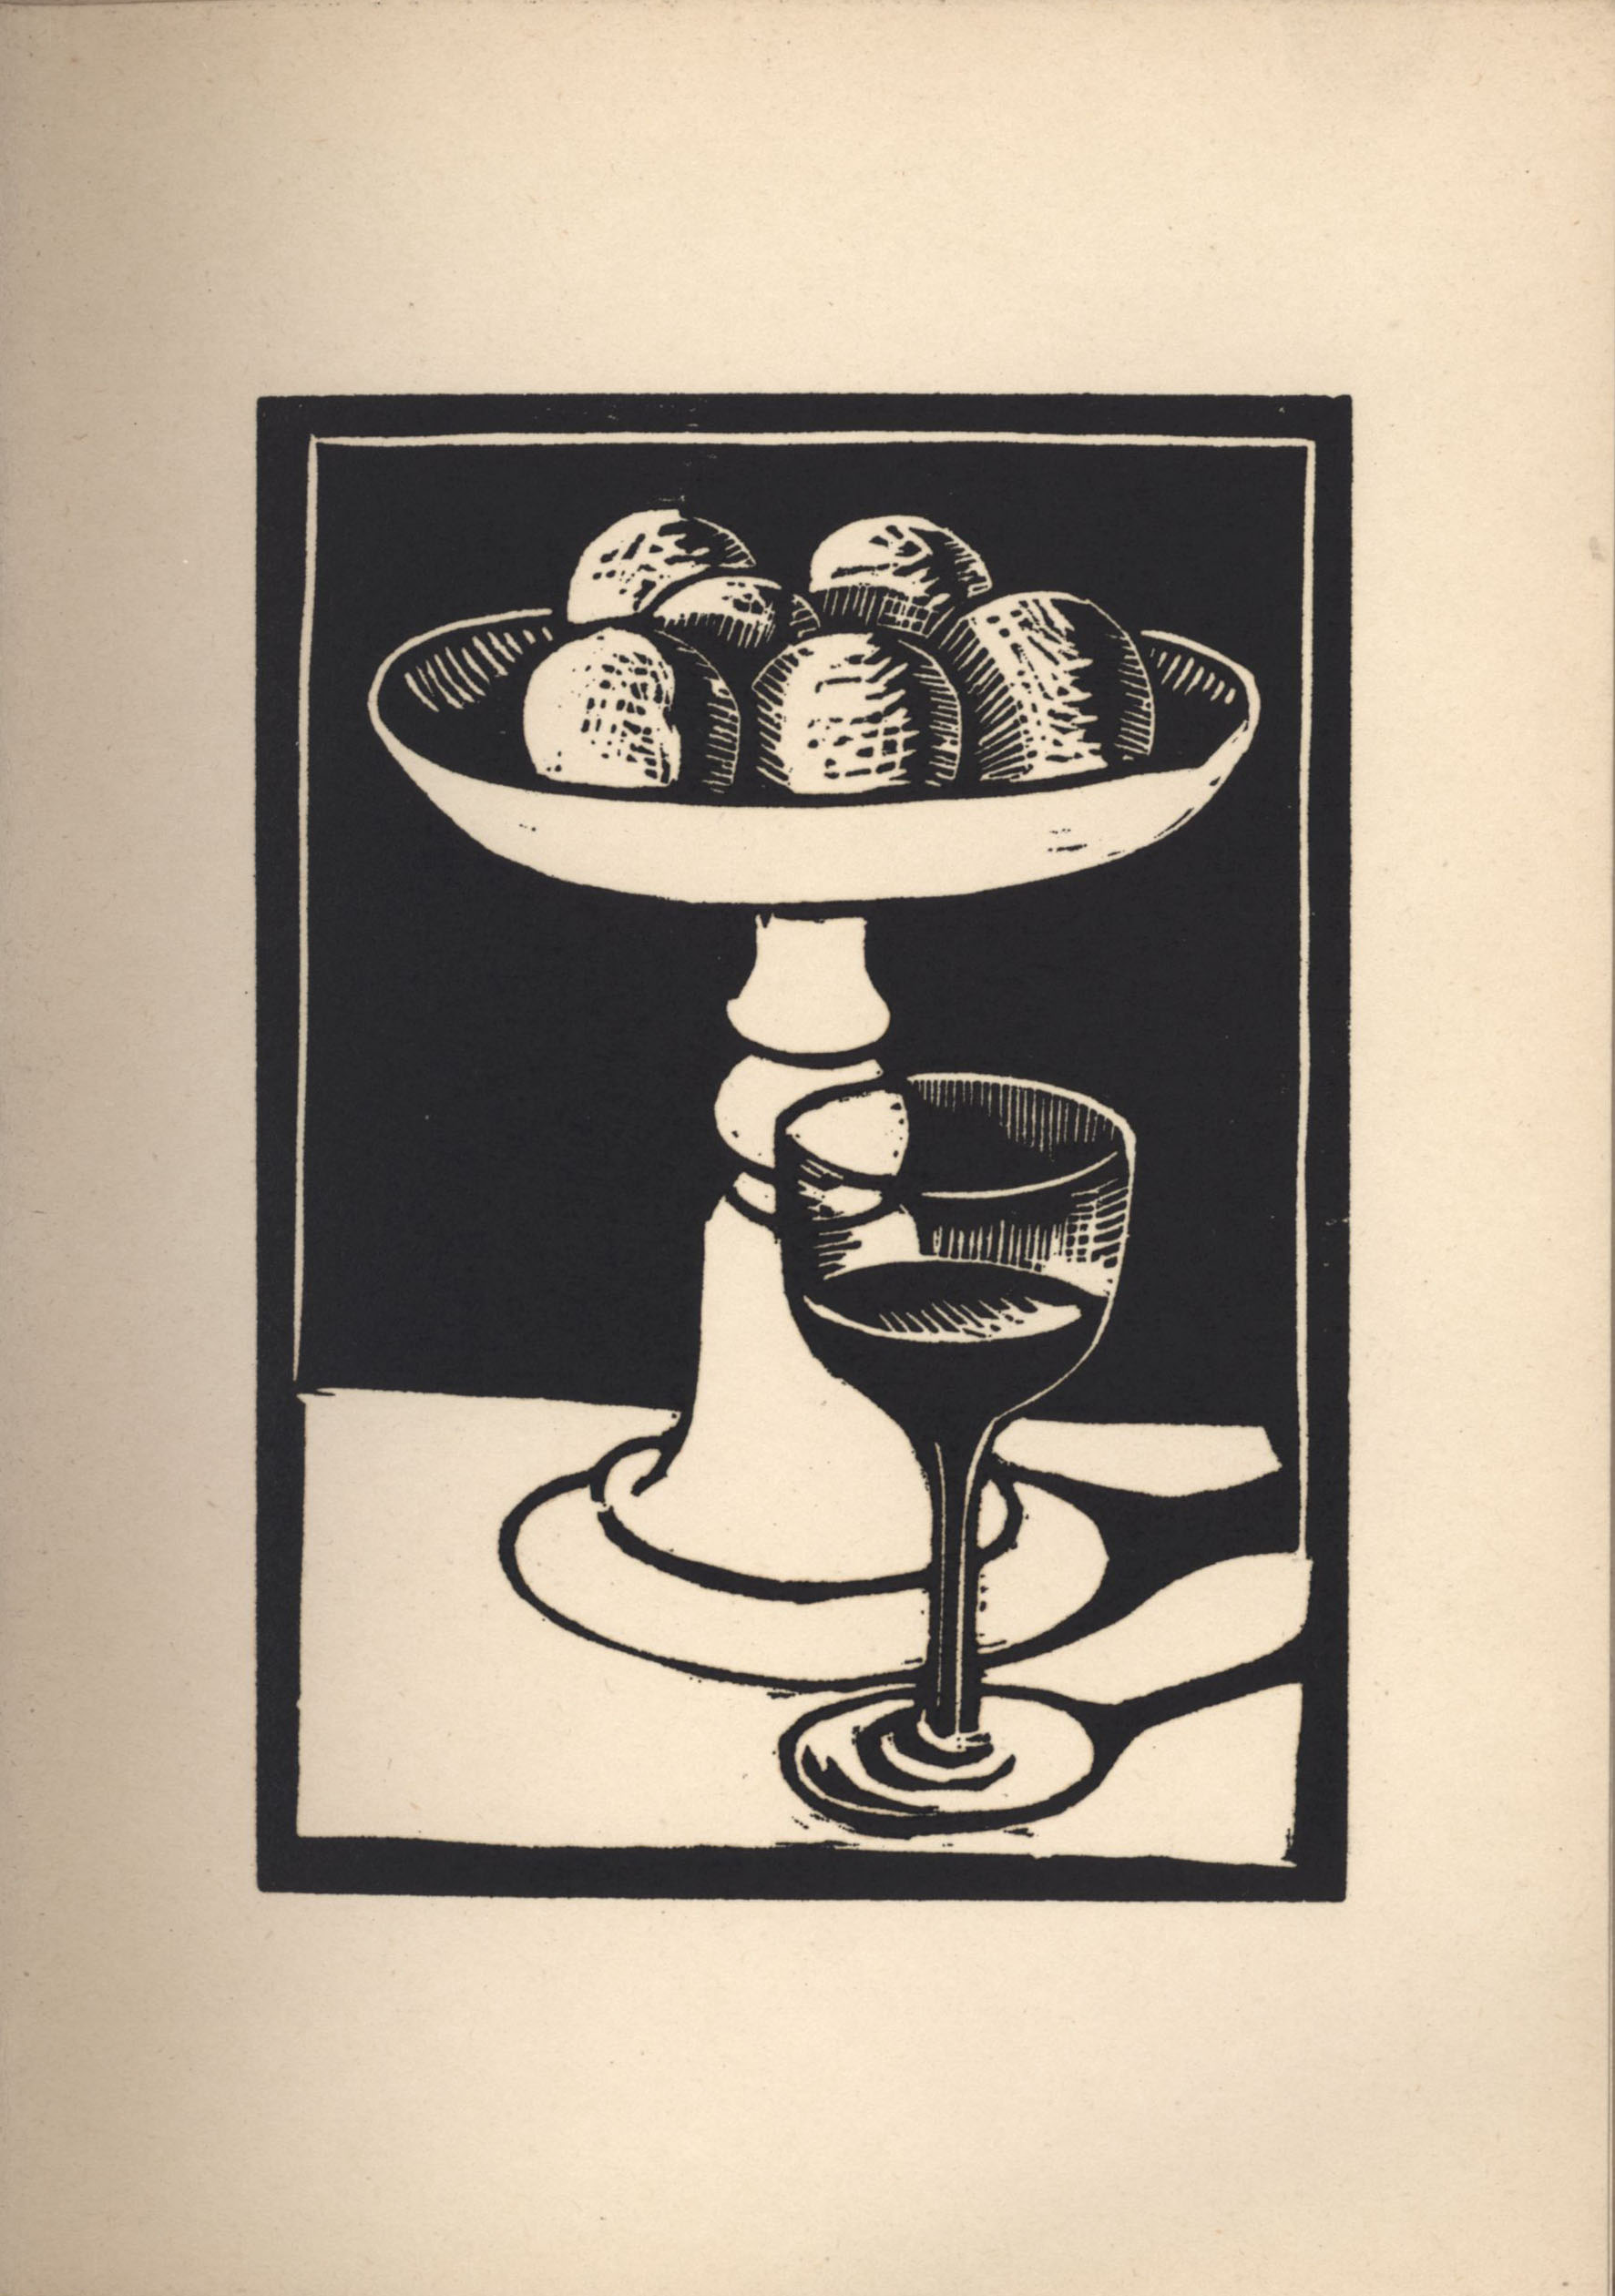 Eleventh woodcut from Roger Fry's 'Twelve Original Woodcuts'.